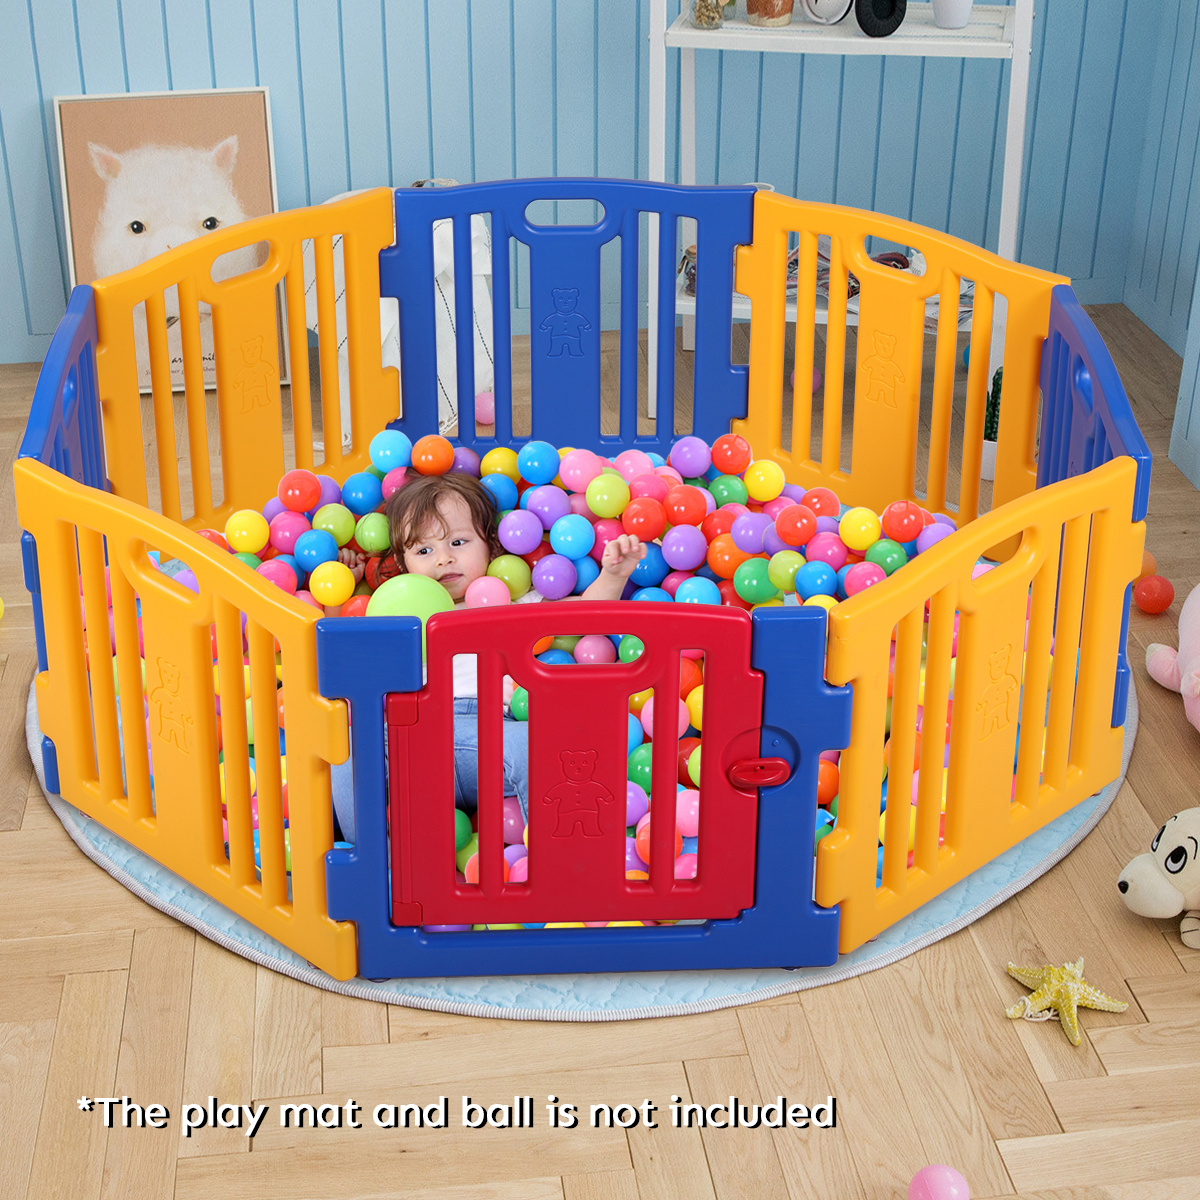 Jaxpety Baby Playpen 8 Panel Kids Safety Play Center Yard Home Foldable High PE Frame Play Pens Indoor Outdoor by JAXPETY